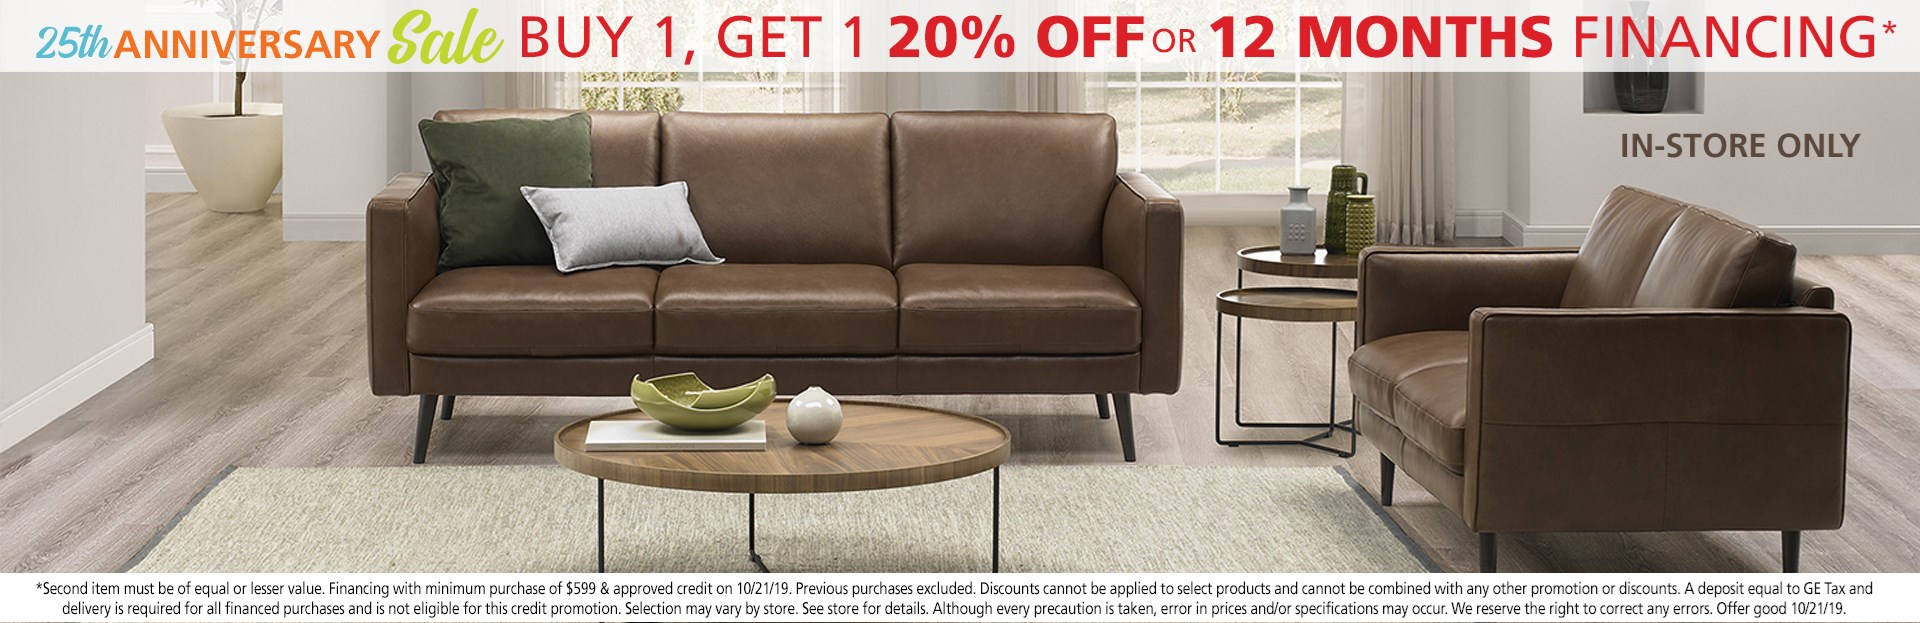 Buy one get one 20% off or ask about 12 months financing; see store for details.